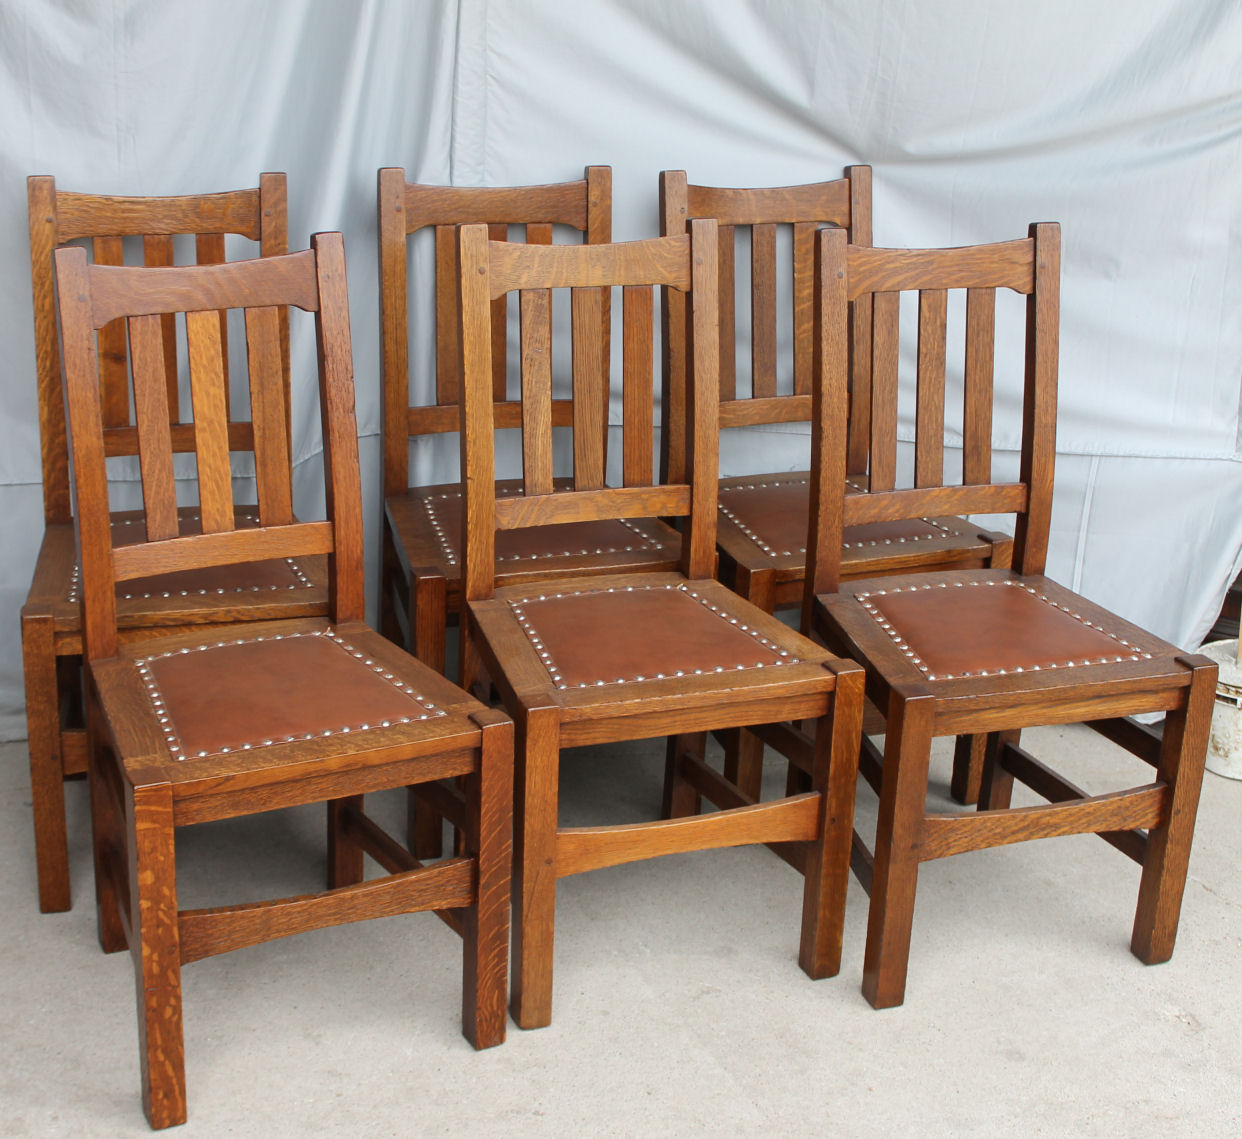 Mission Chairs Bargain John 39s Antiques Arts And Crafts Mission Oak Set